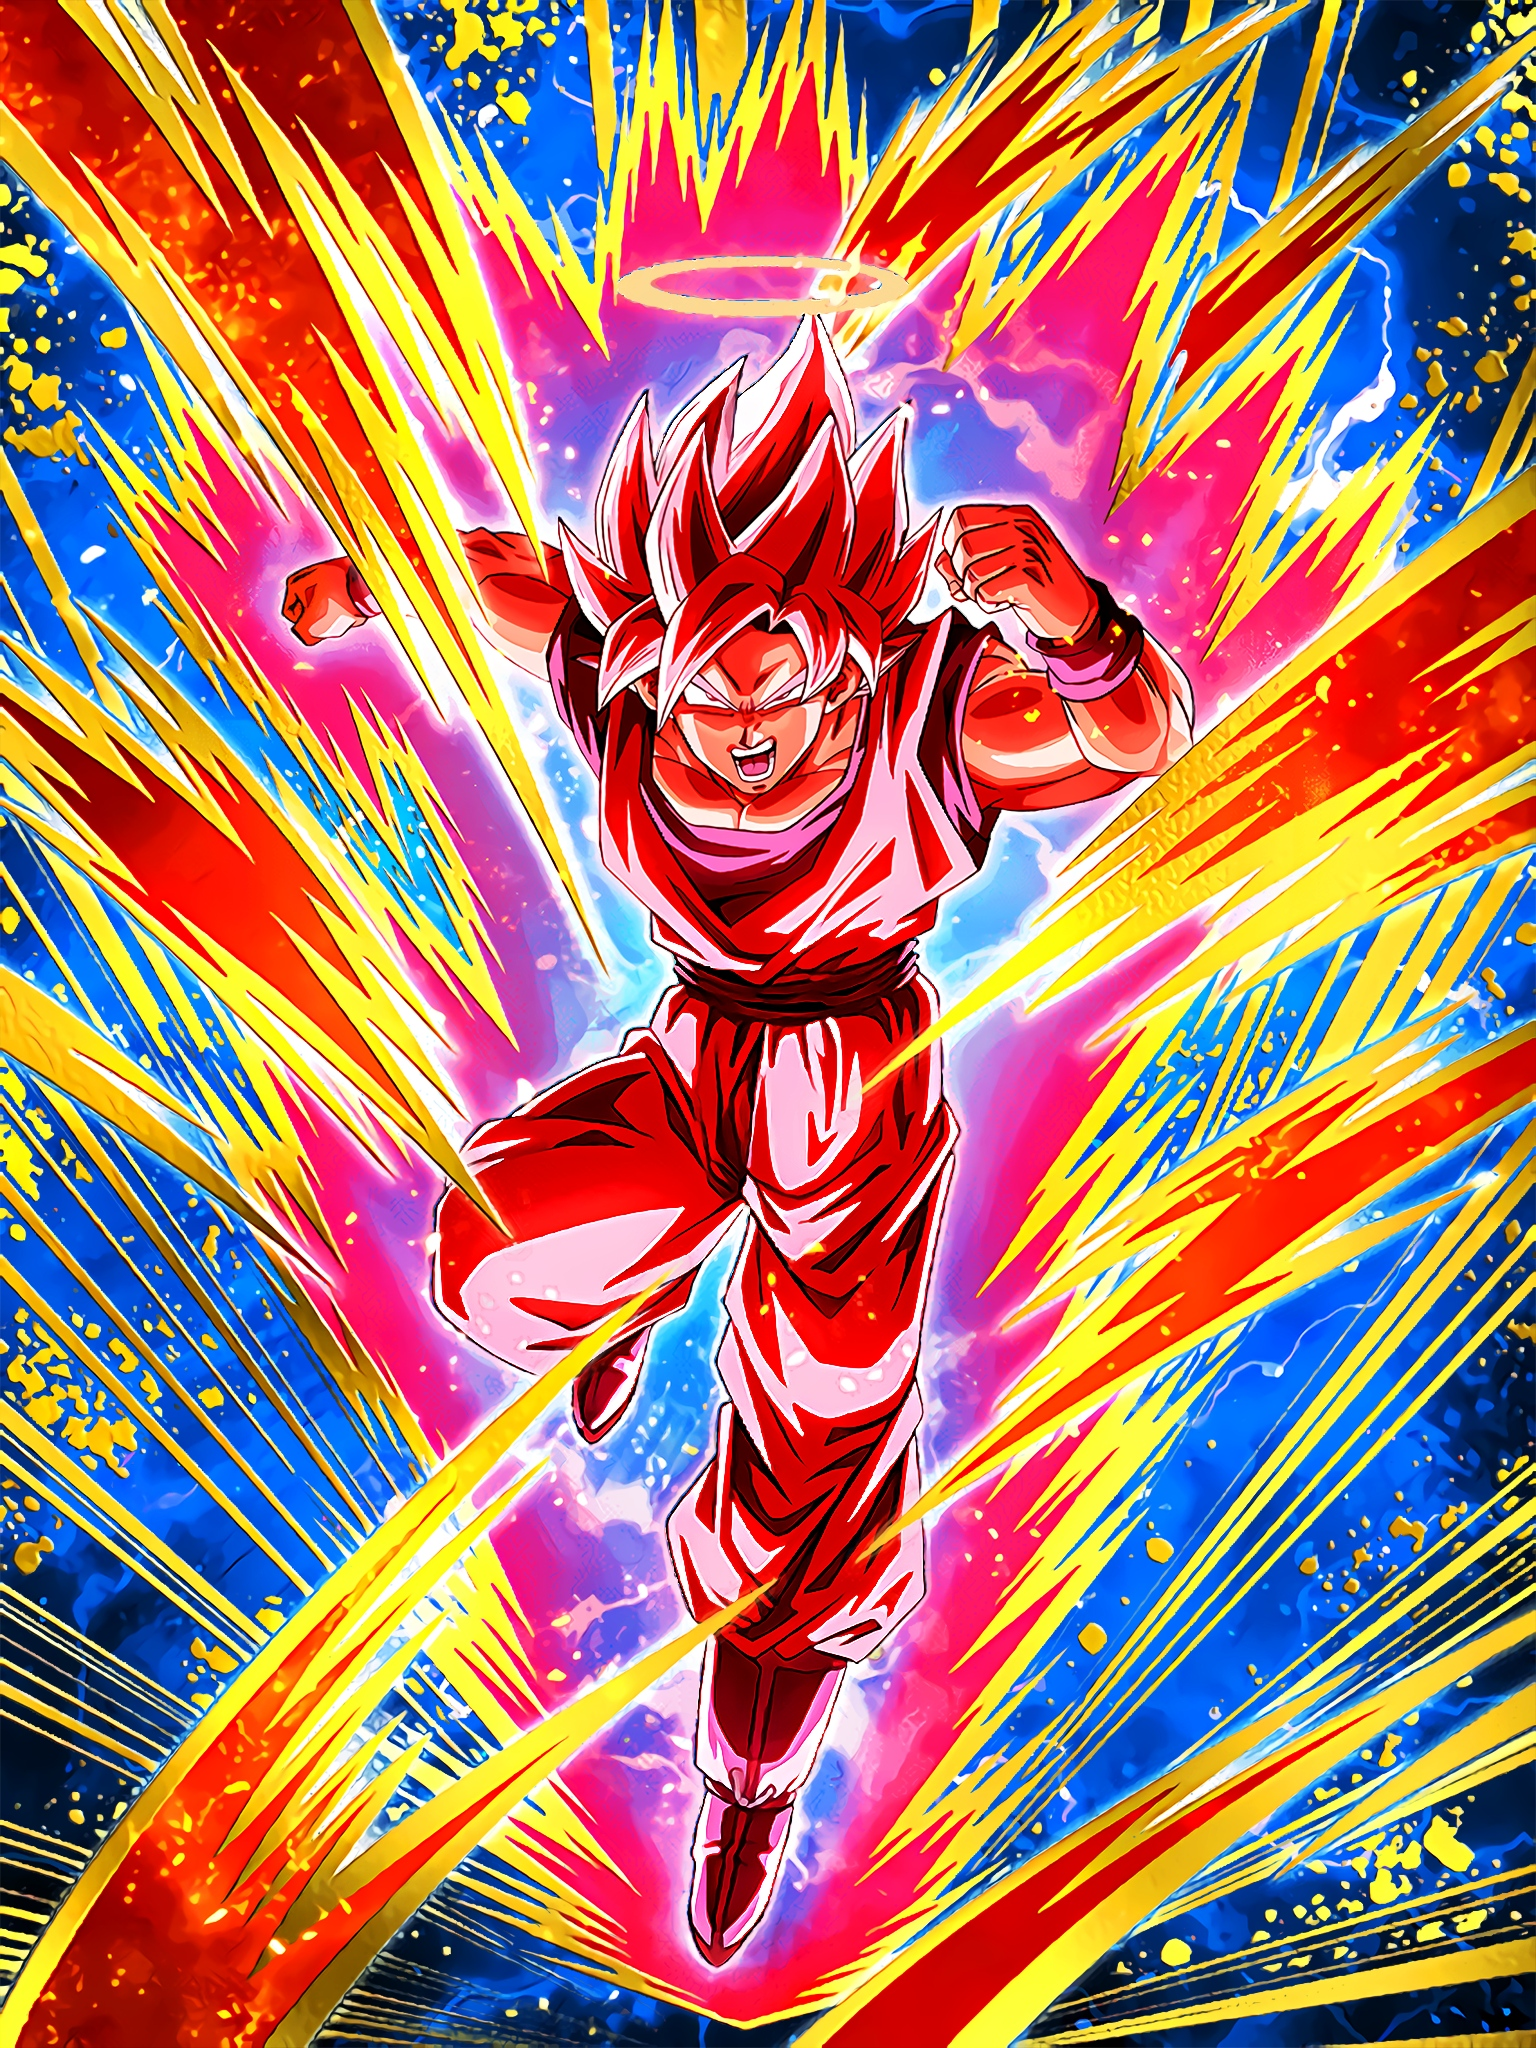 Victory-Sealing Super Attack Super Saiyan Goku Angel Super Kaioken Art (Dragon Ball Z Dokkan Battle).jpg